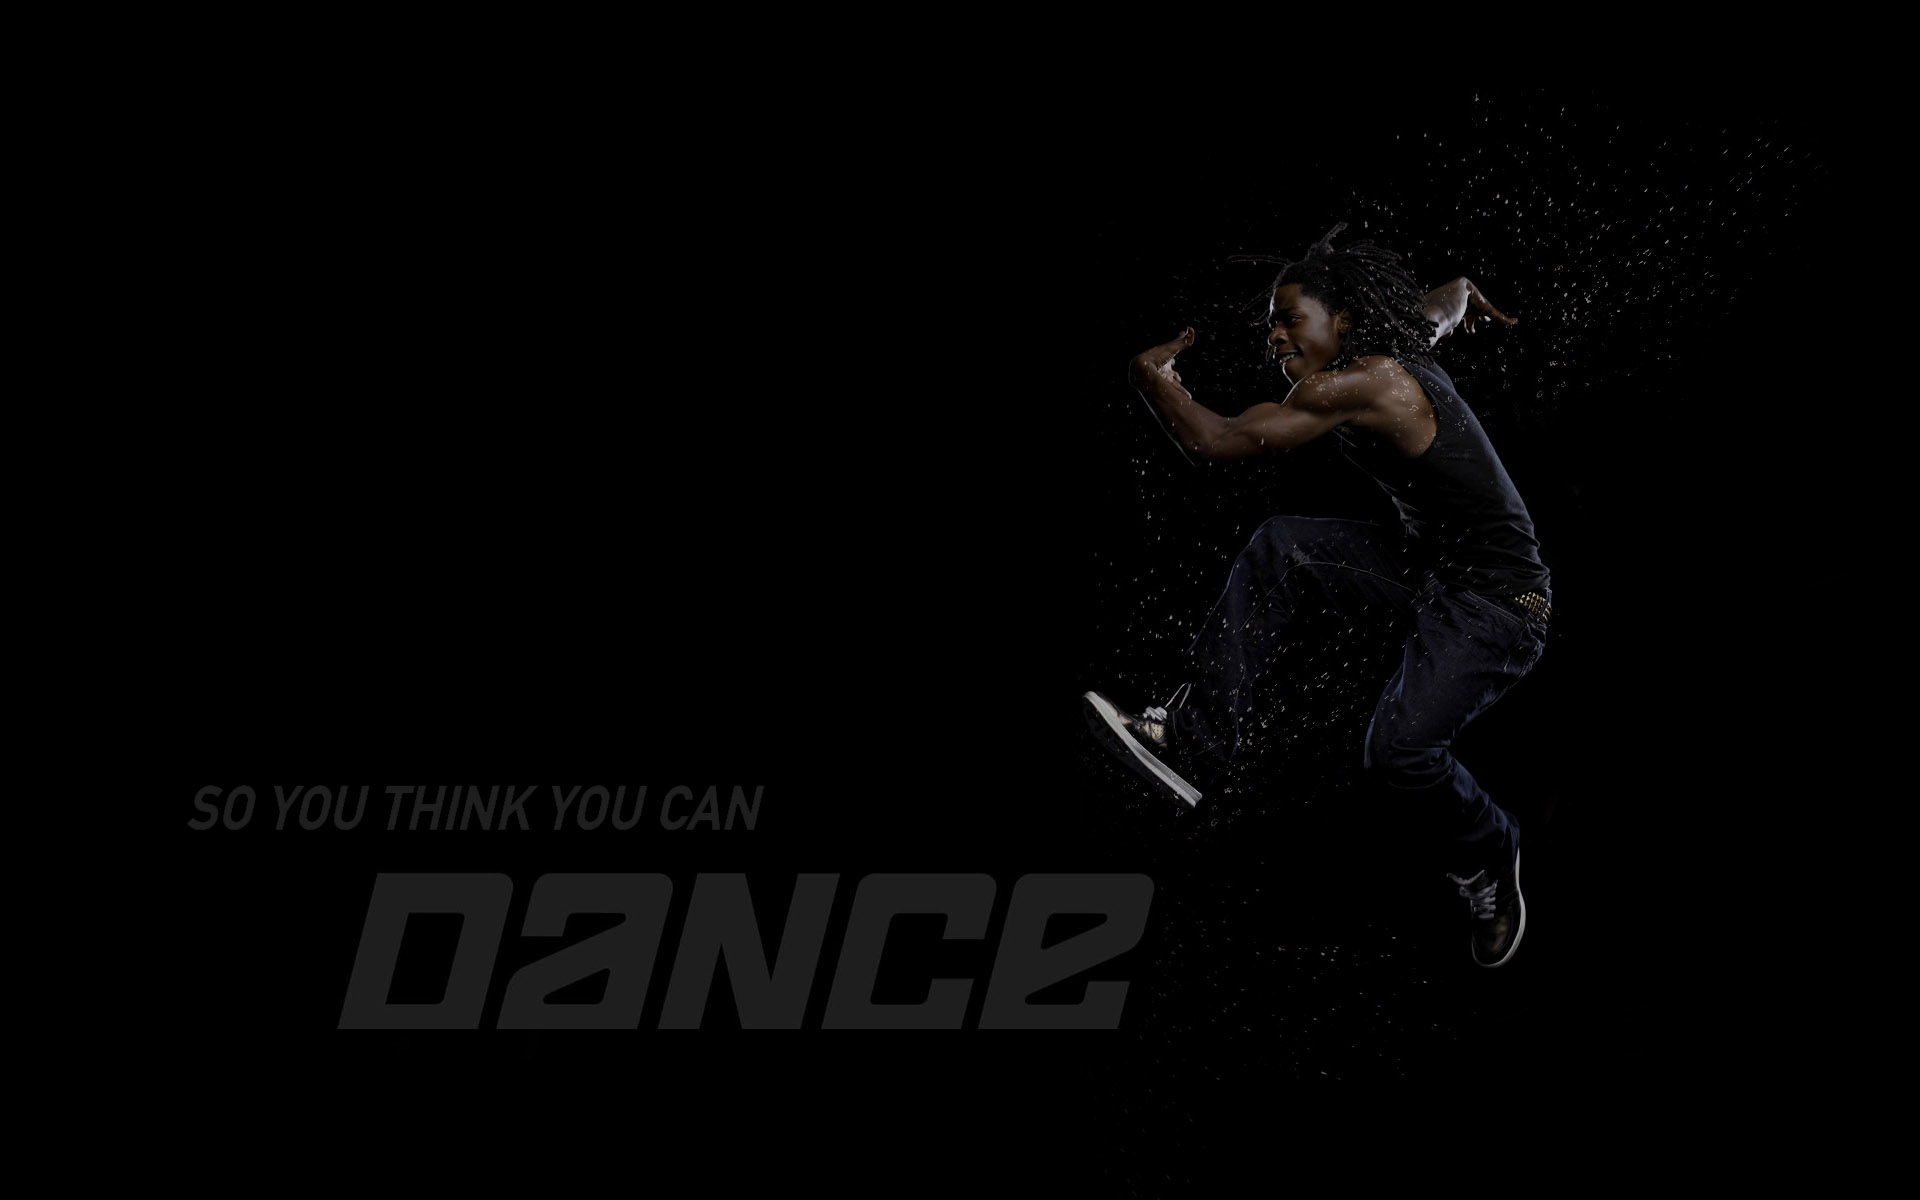 So You Think Can Dance Widescreen Wallpaper